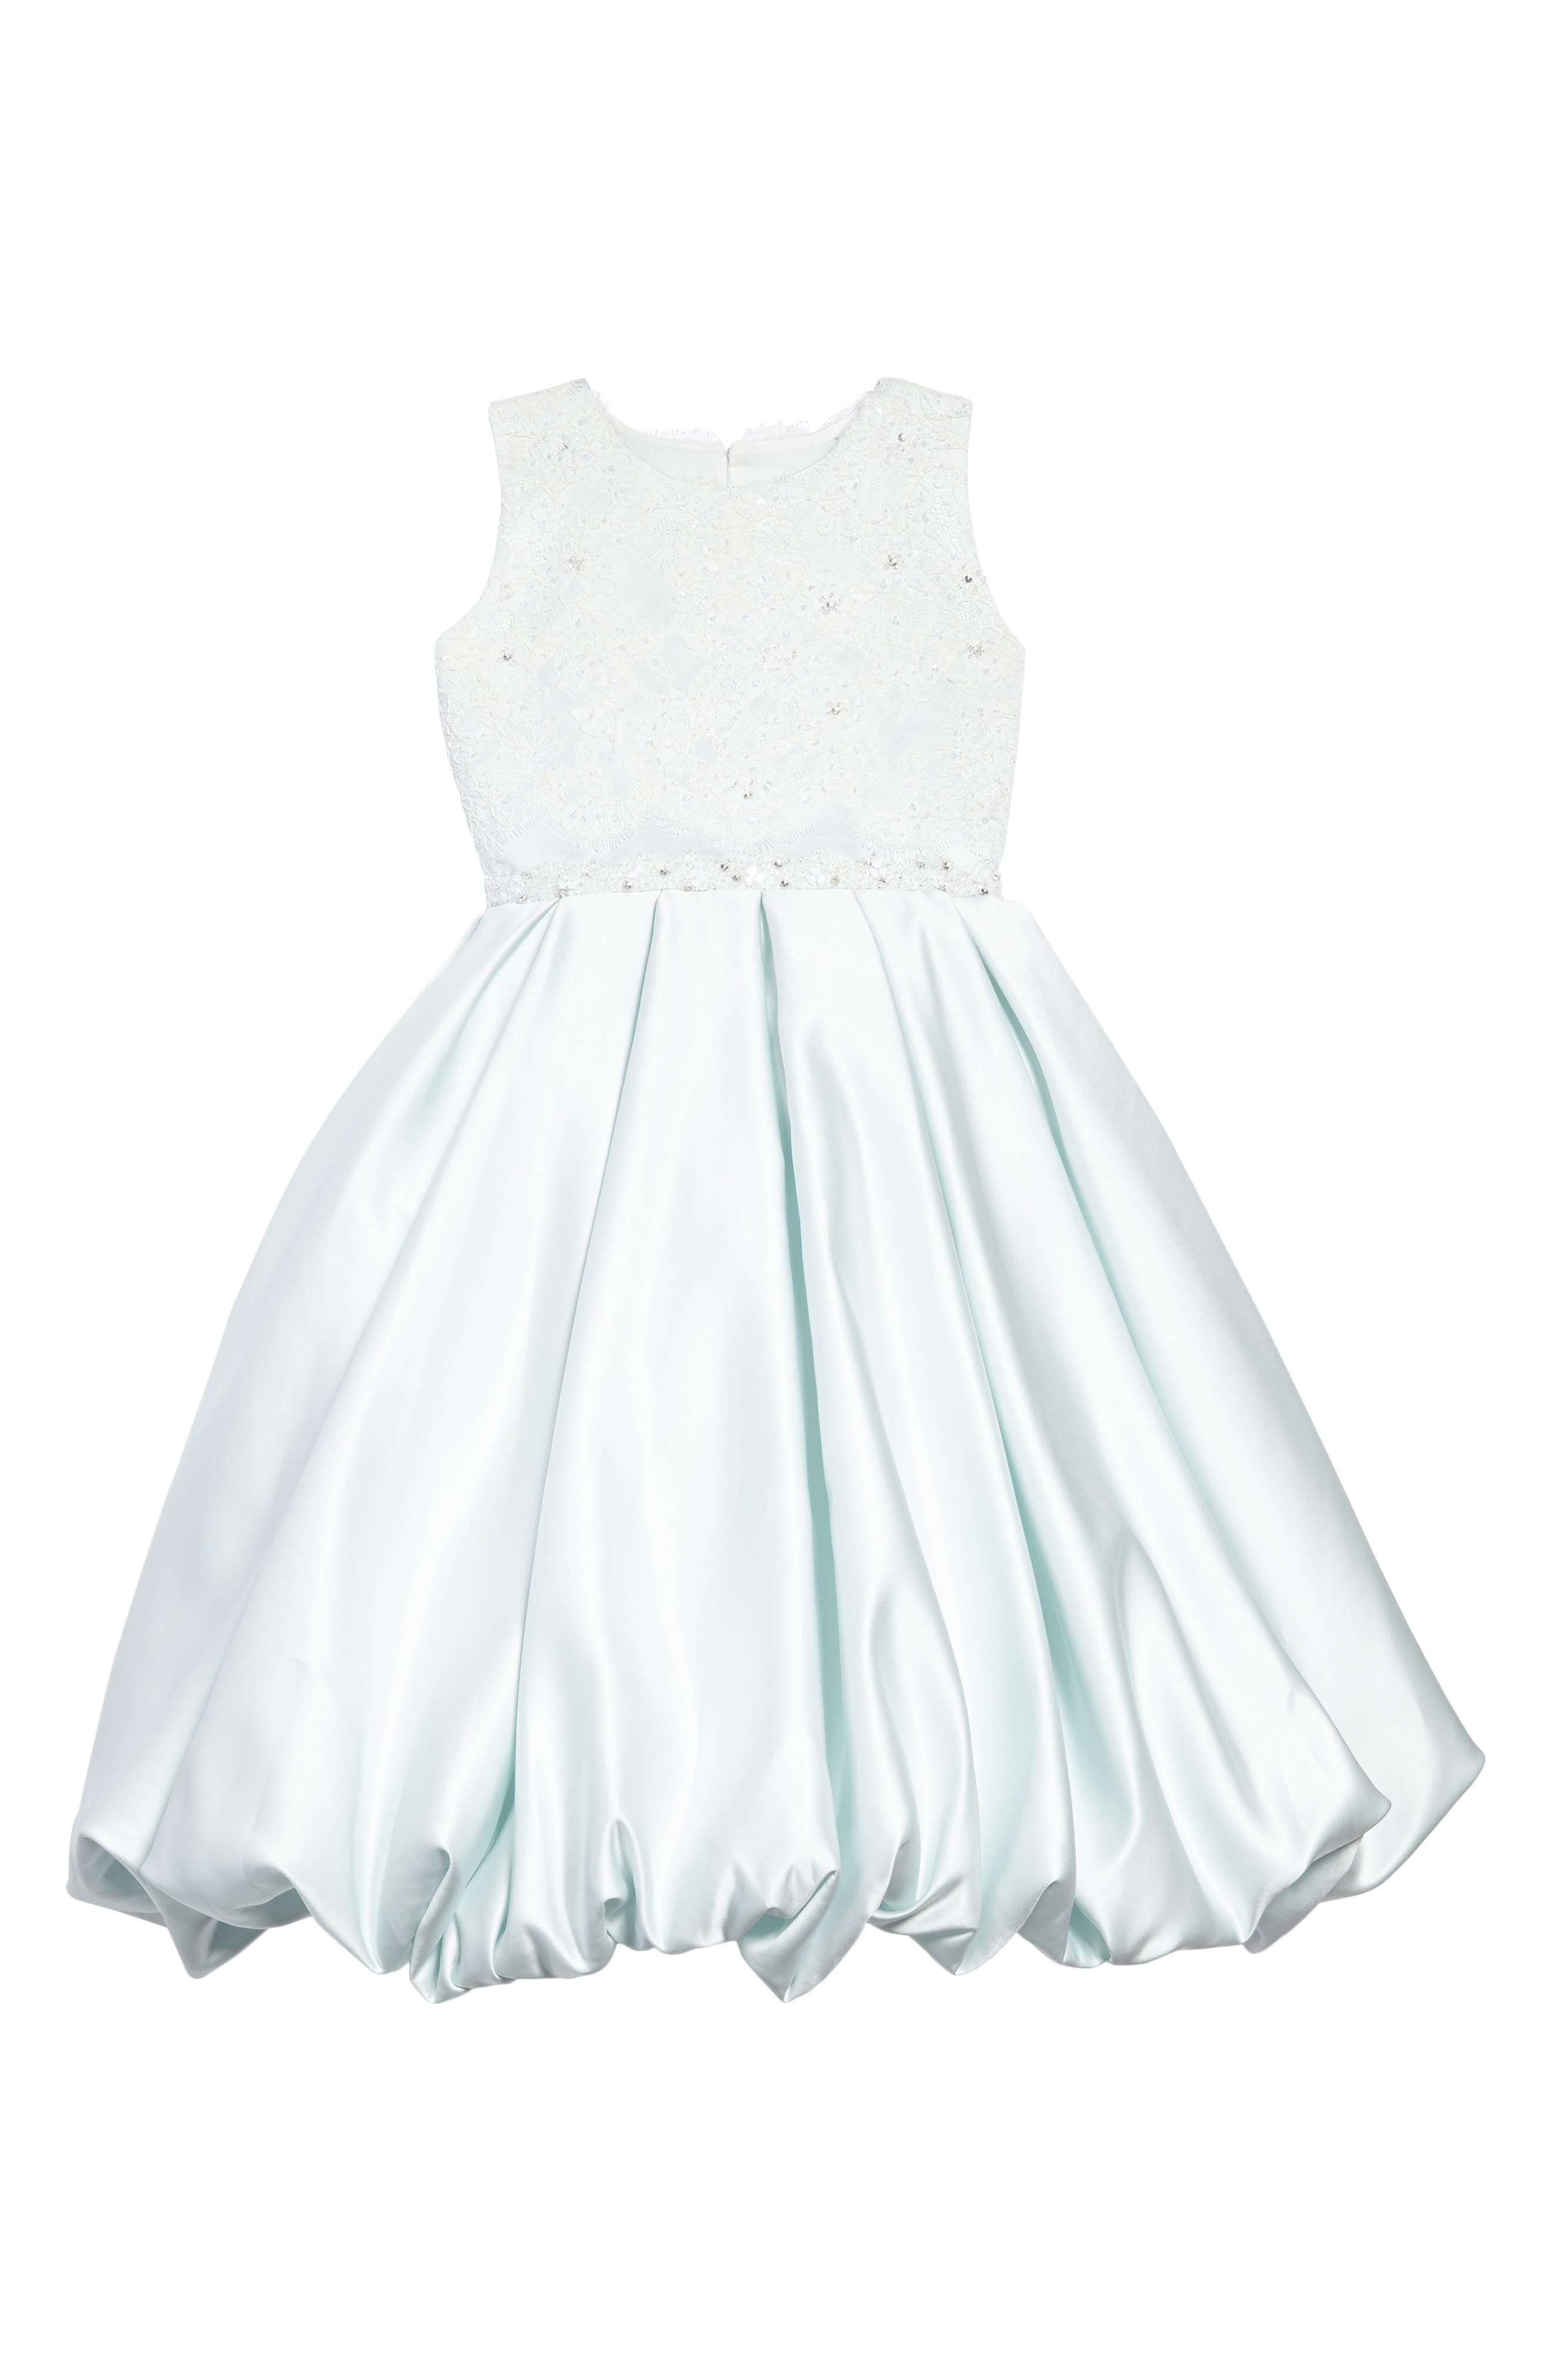 Alternate Image 1 Selected - Joan Calabrese for Mon Cheri Beaded Lace & Satin First Communion Dress (Toddler Girls, Little Girls & Big Girls)